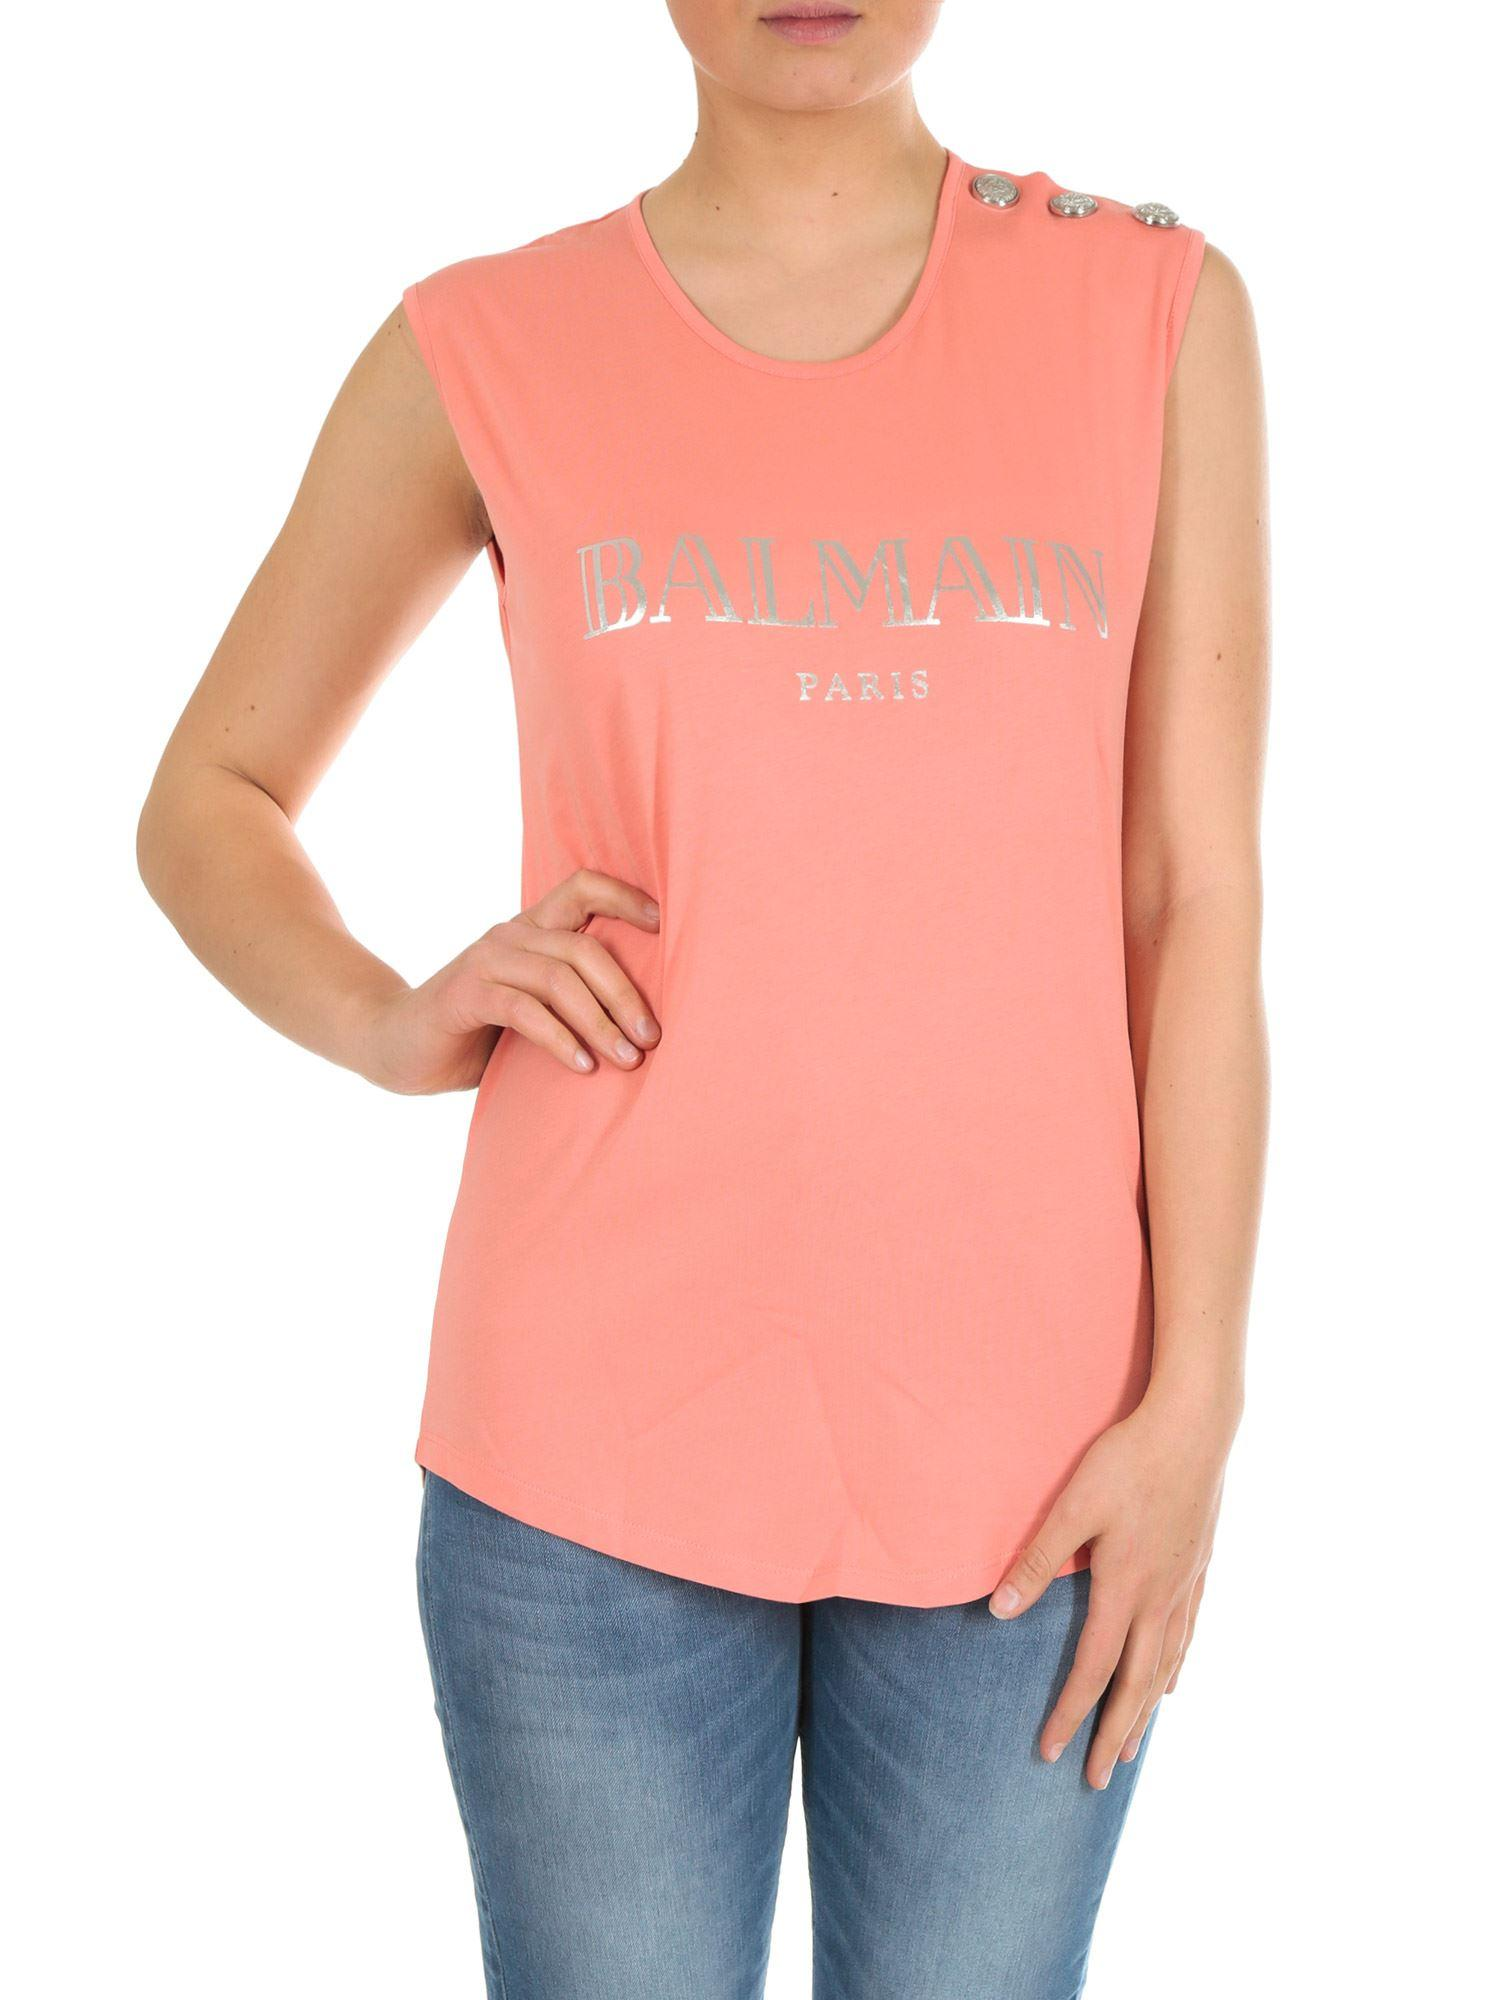 1b807a30f82e39 Balmain Pink Sleeveless Top With Logo in Pink - Lyst